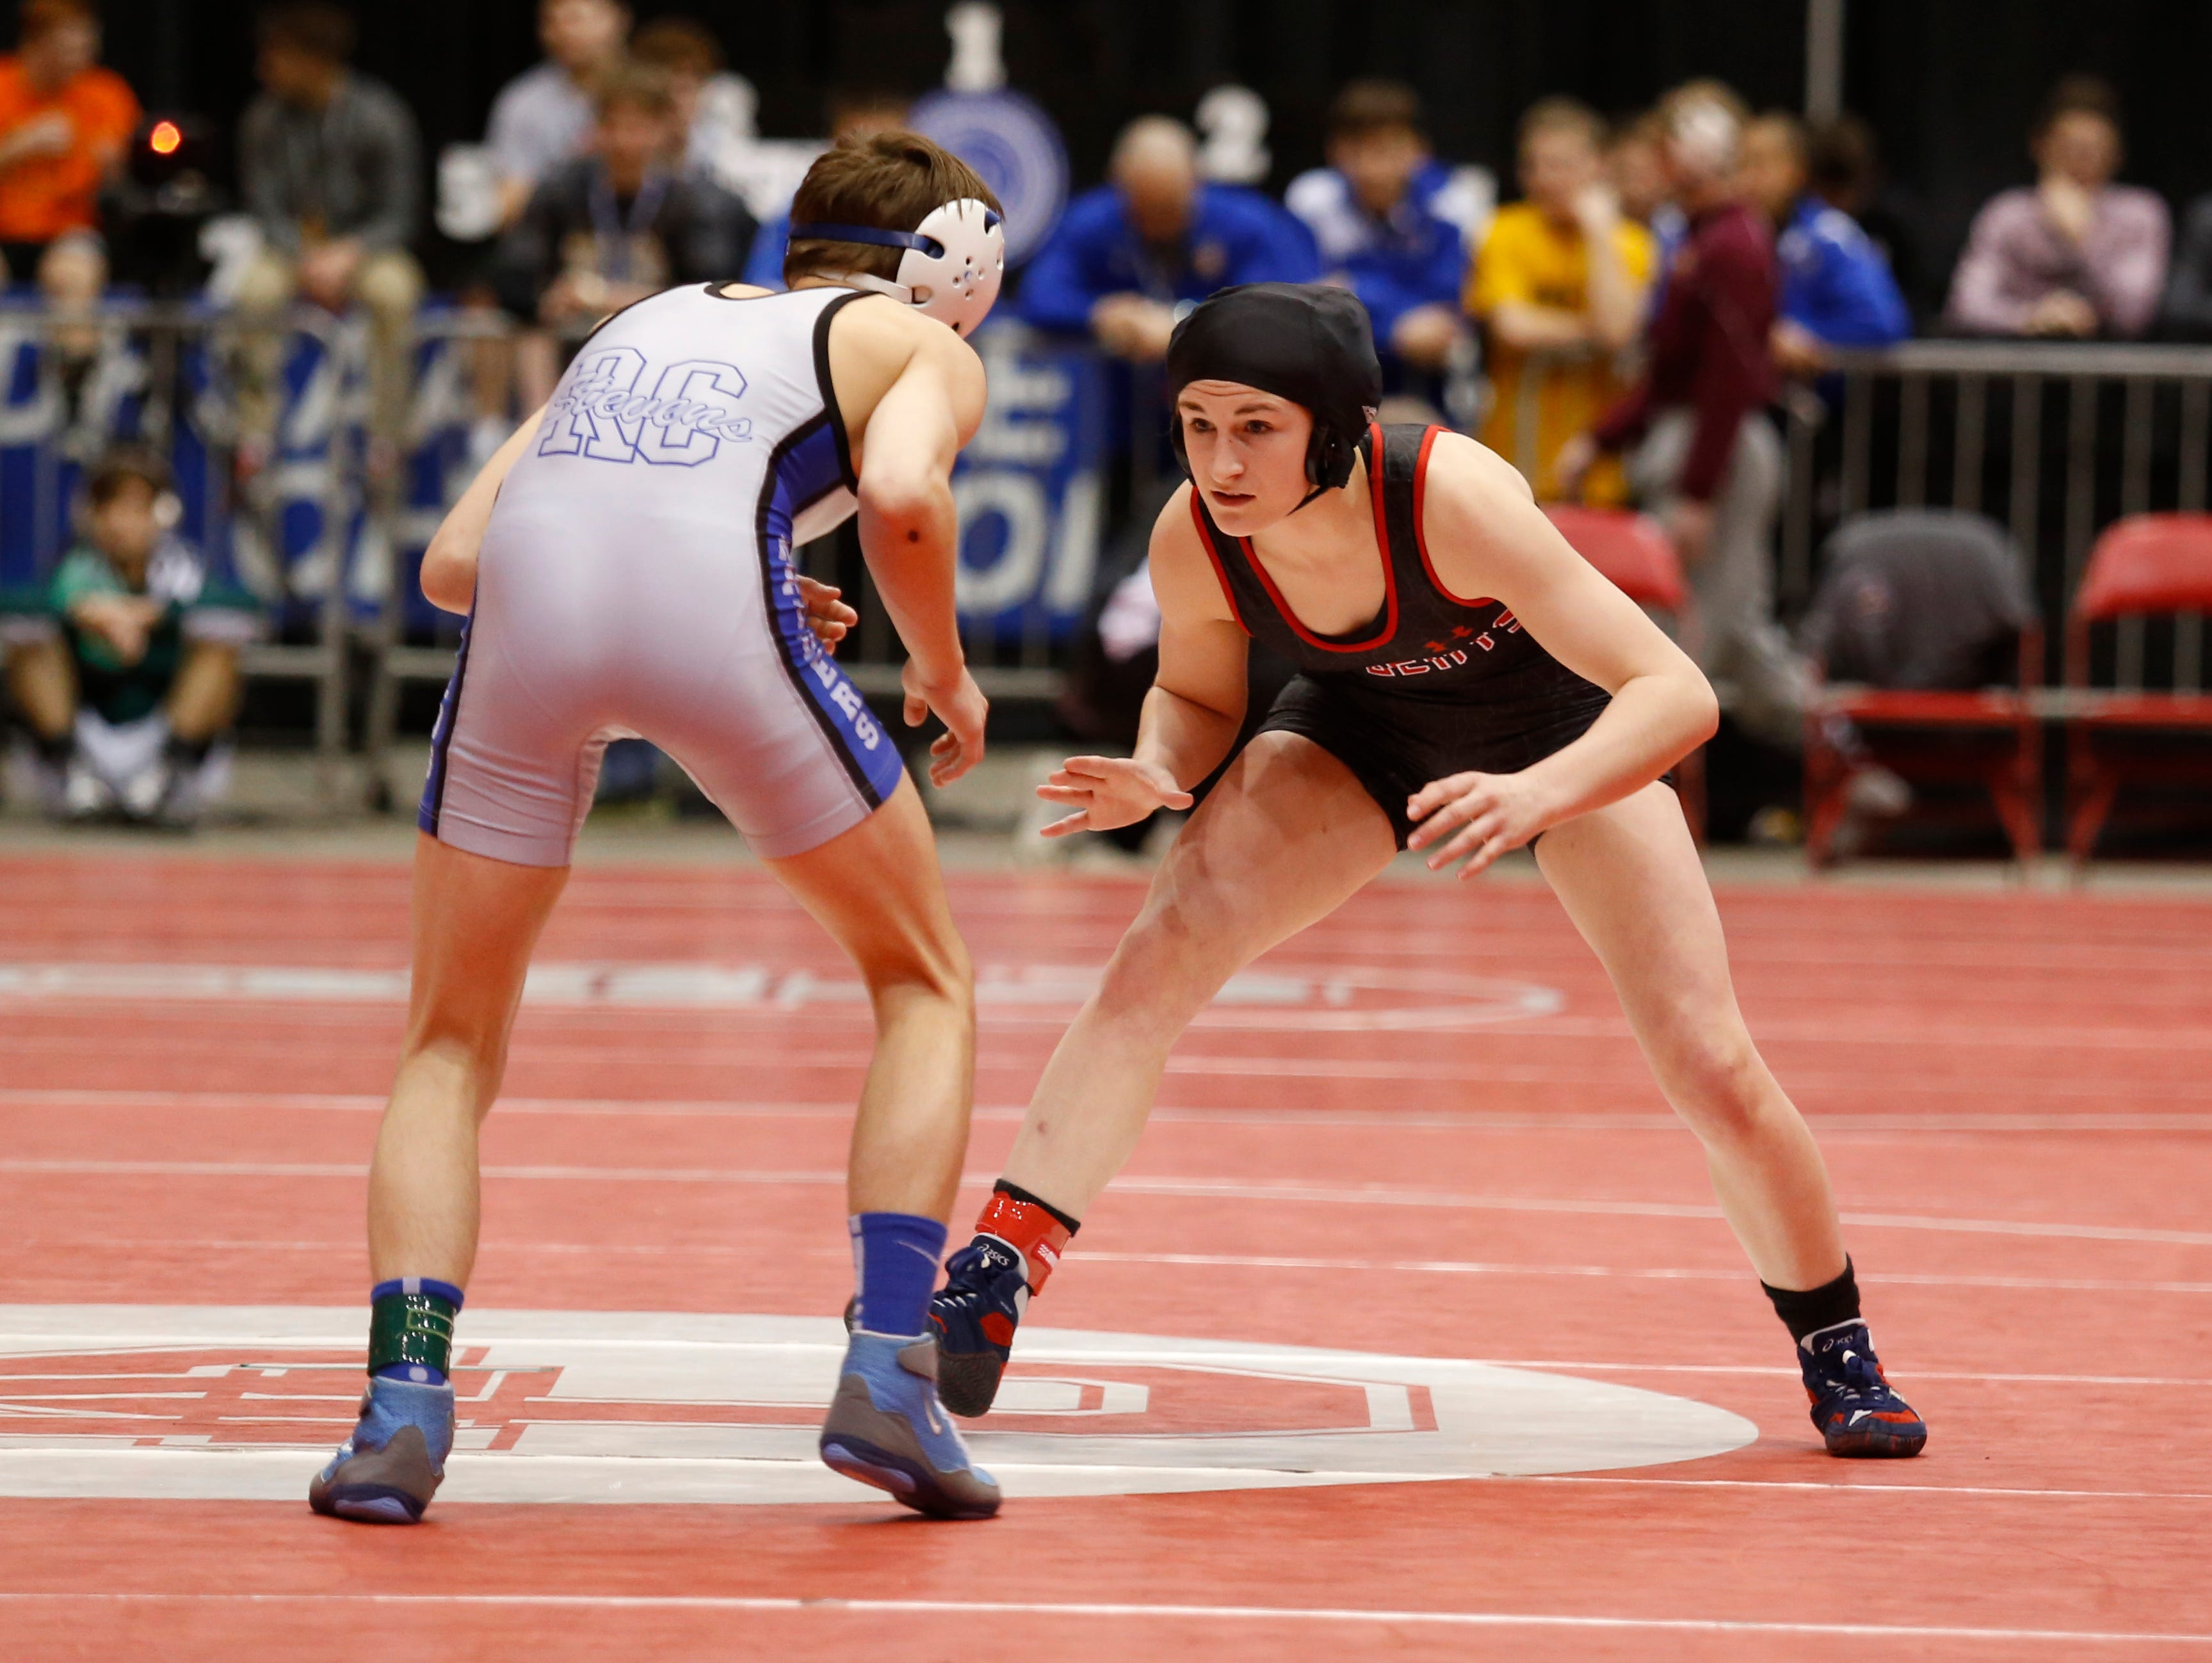 Brookings' Ronna Heaton, right, wrestles Rapid City Stevens' Cody BeVier, left, during the 113-pound third place match at the Class A state wrestling tournament Saturday in Rapid City. (Marcus Traxler/Mitchell Daily Republic)